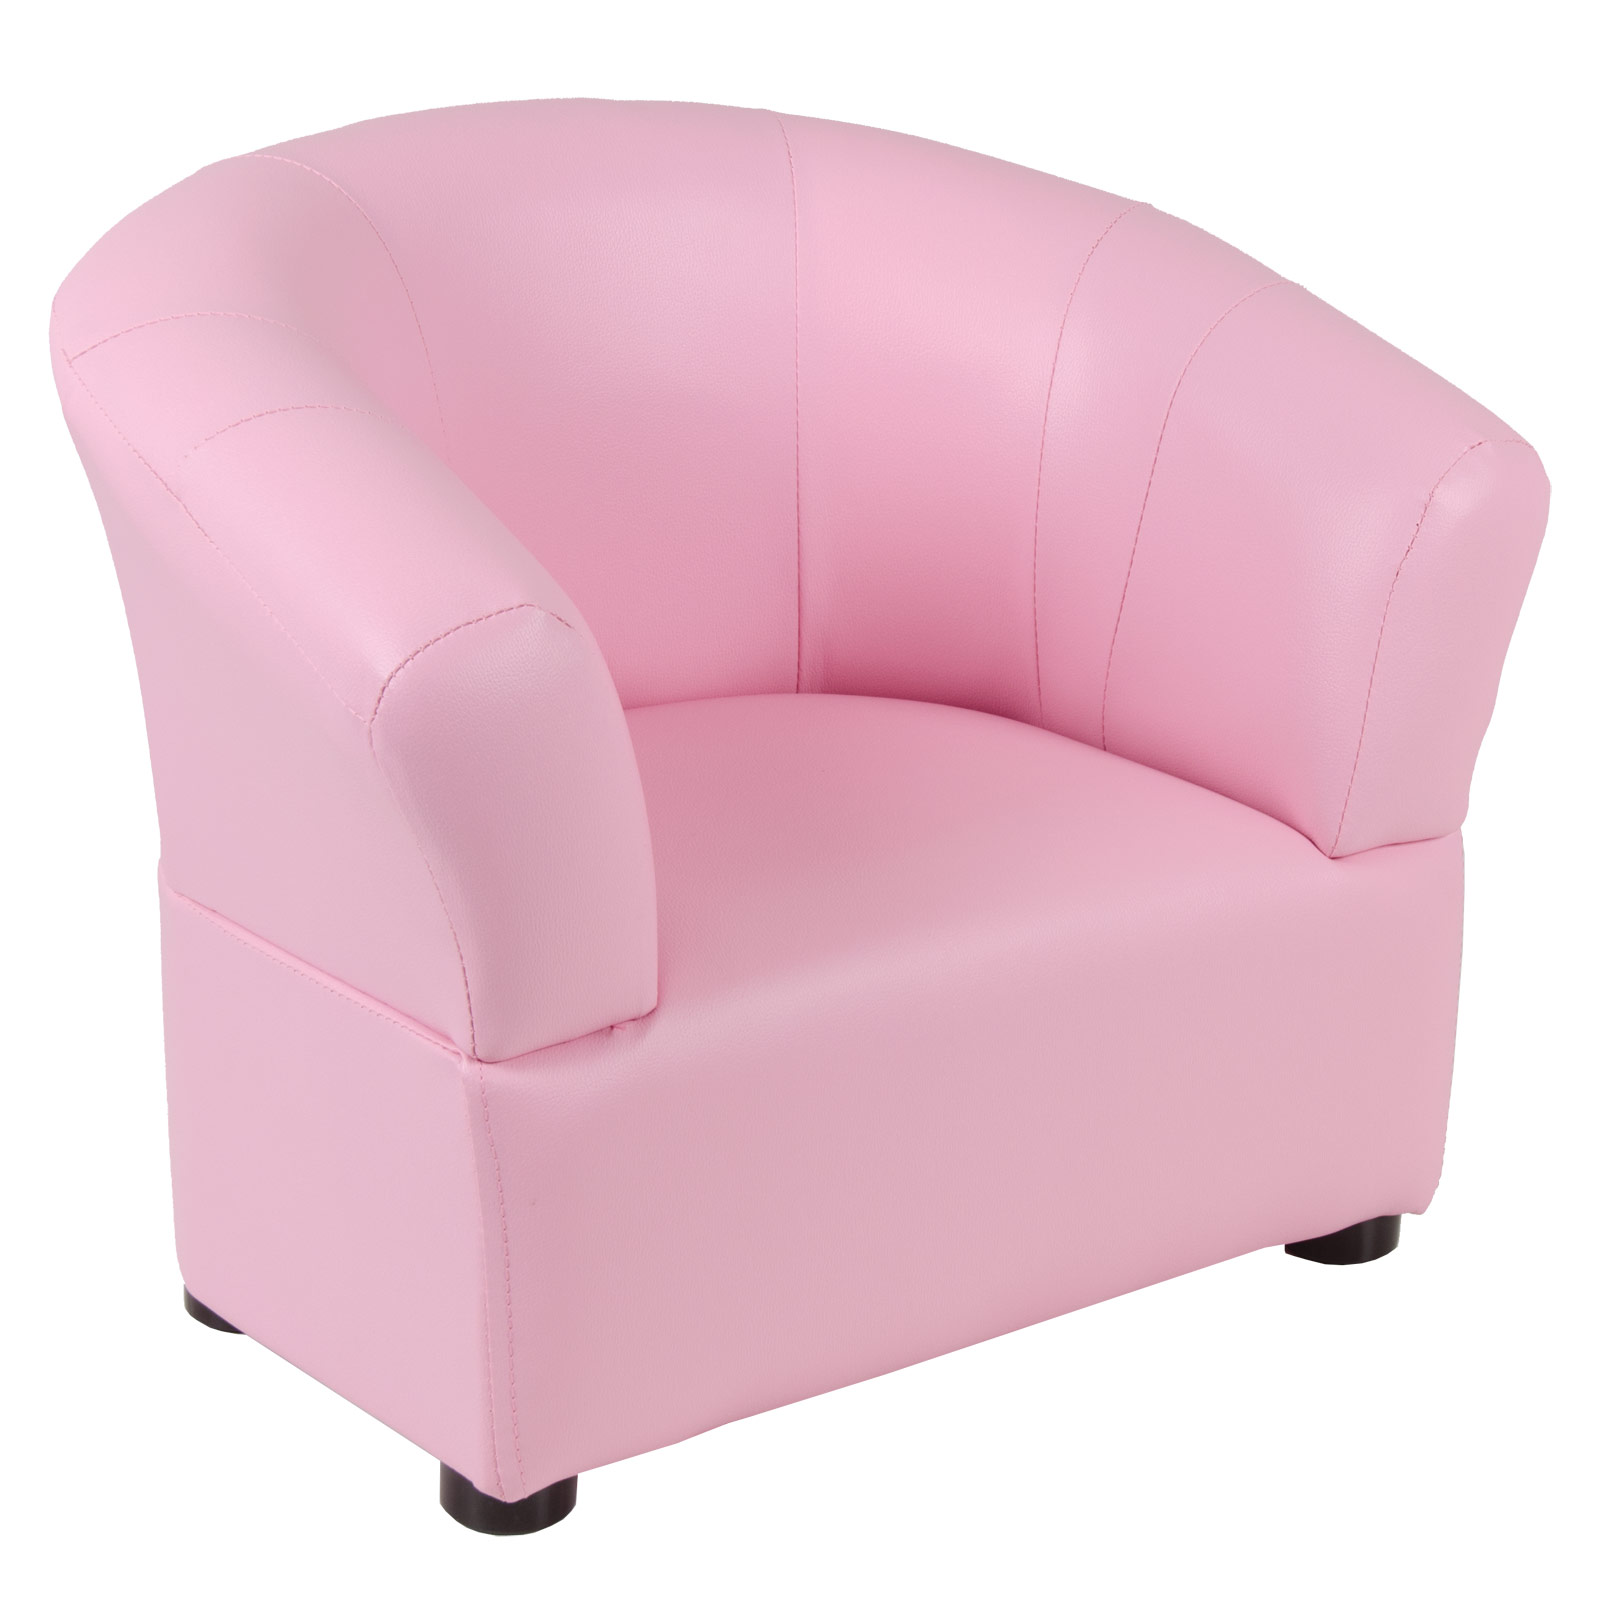 Kids Comfy Pvc Leather Look Tub Chair Armchair Seat